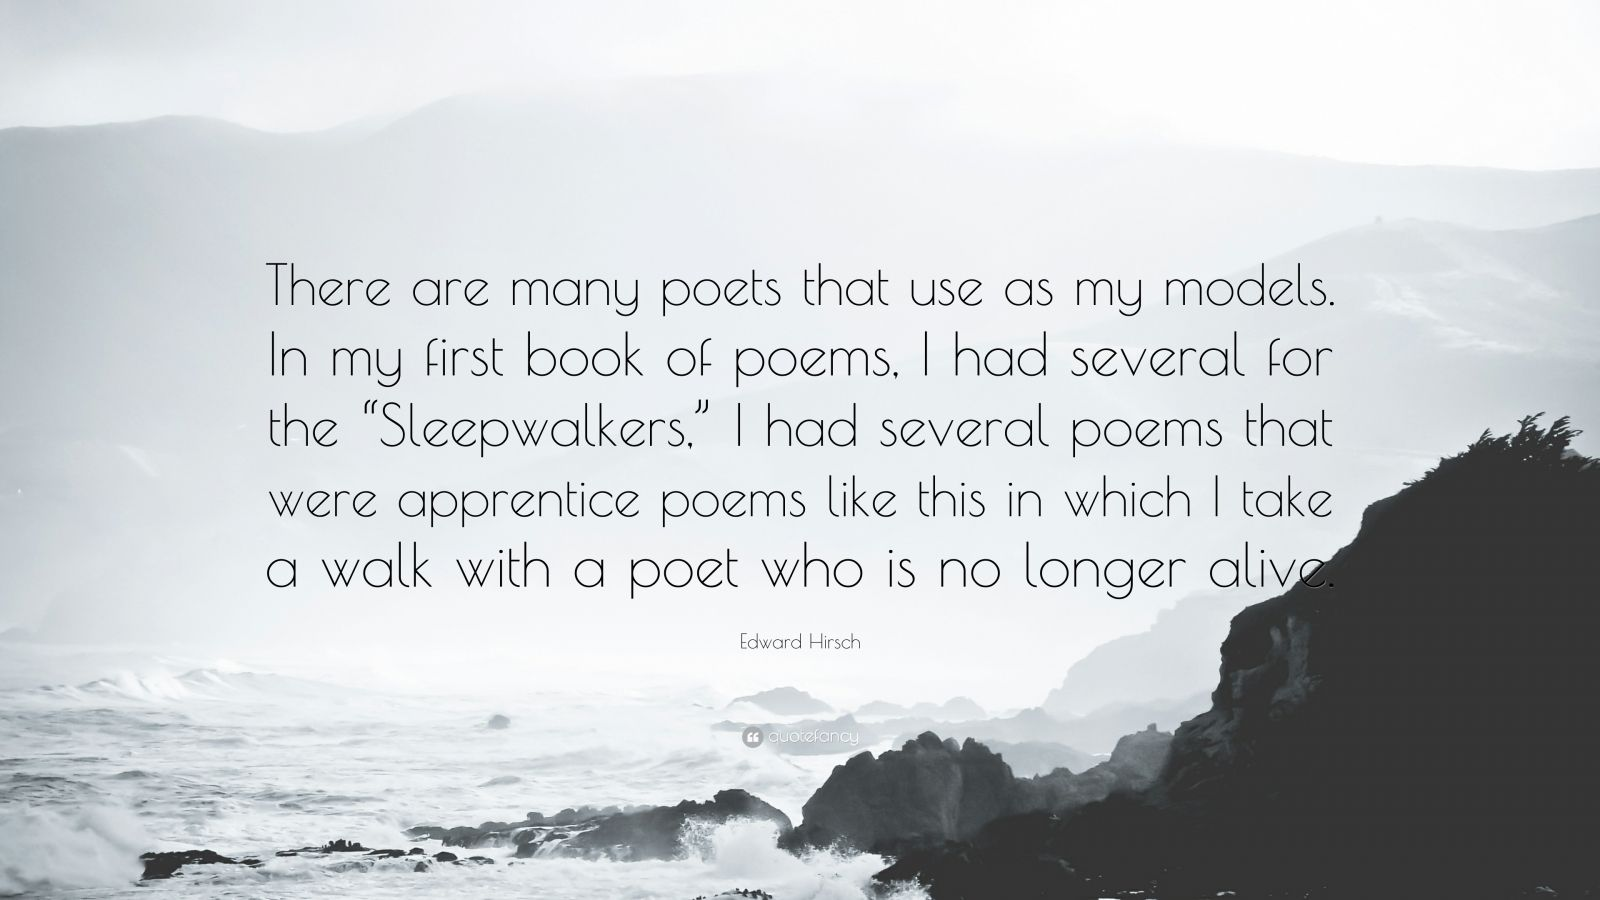 an analysis of for the sleepwalkers a poem by edward hirsch Edward hirsch is a celebrated poet and peerless advocate for poetry he was born in chicago in 1950—his accent makes it impossible for him to hide his origins—and educated at grinnell college and the university of pennsylvania, where he received a phd in folklore.